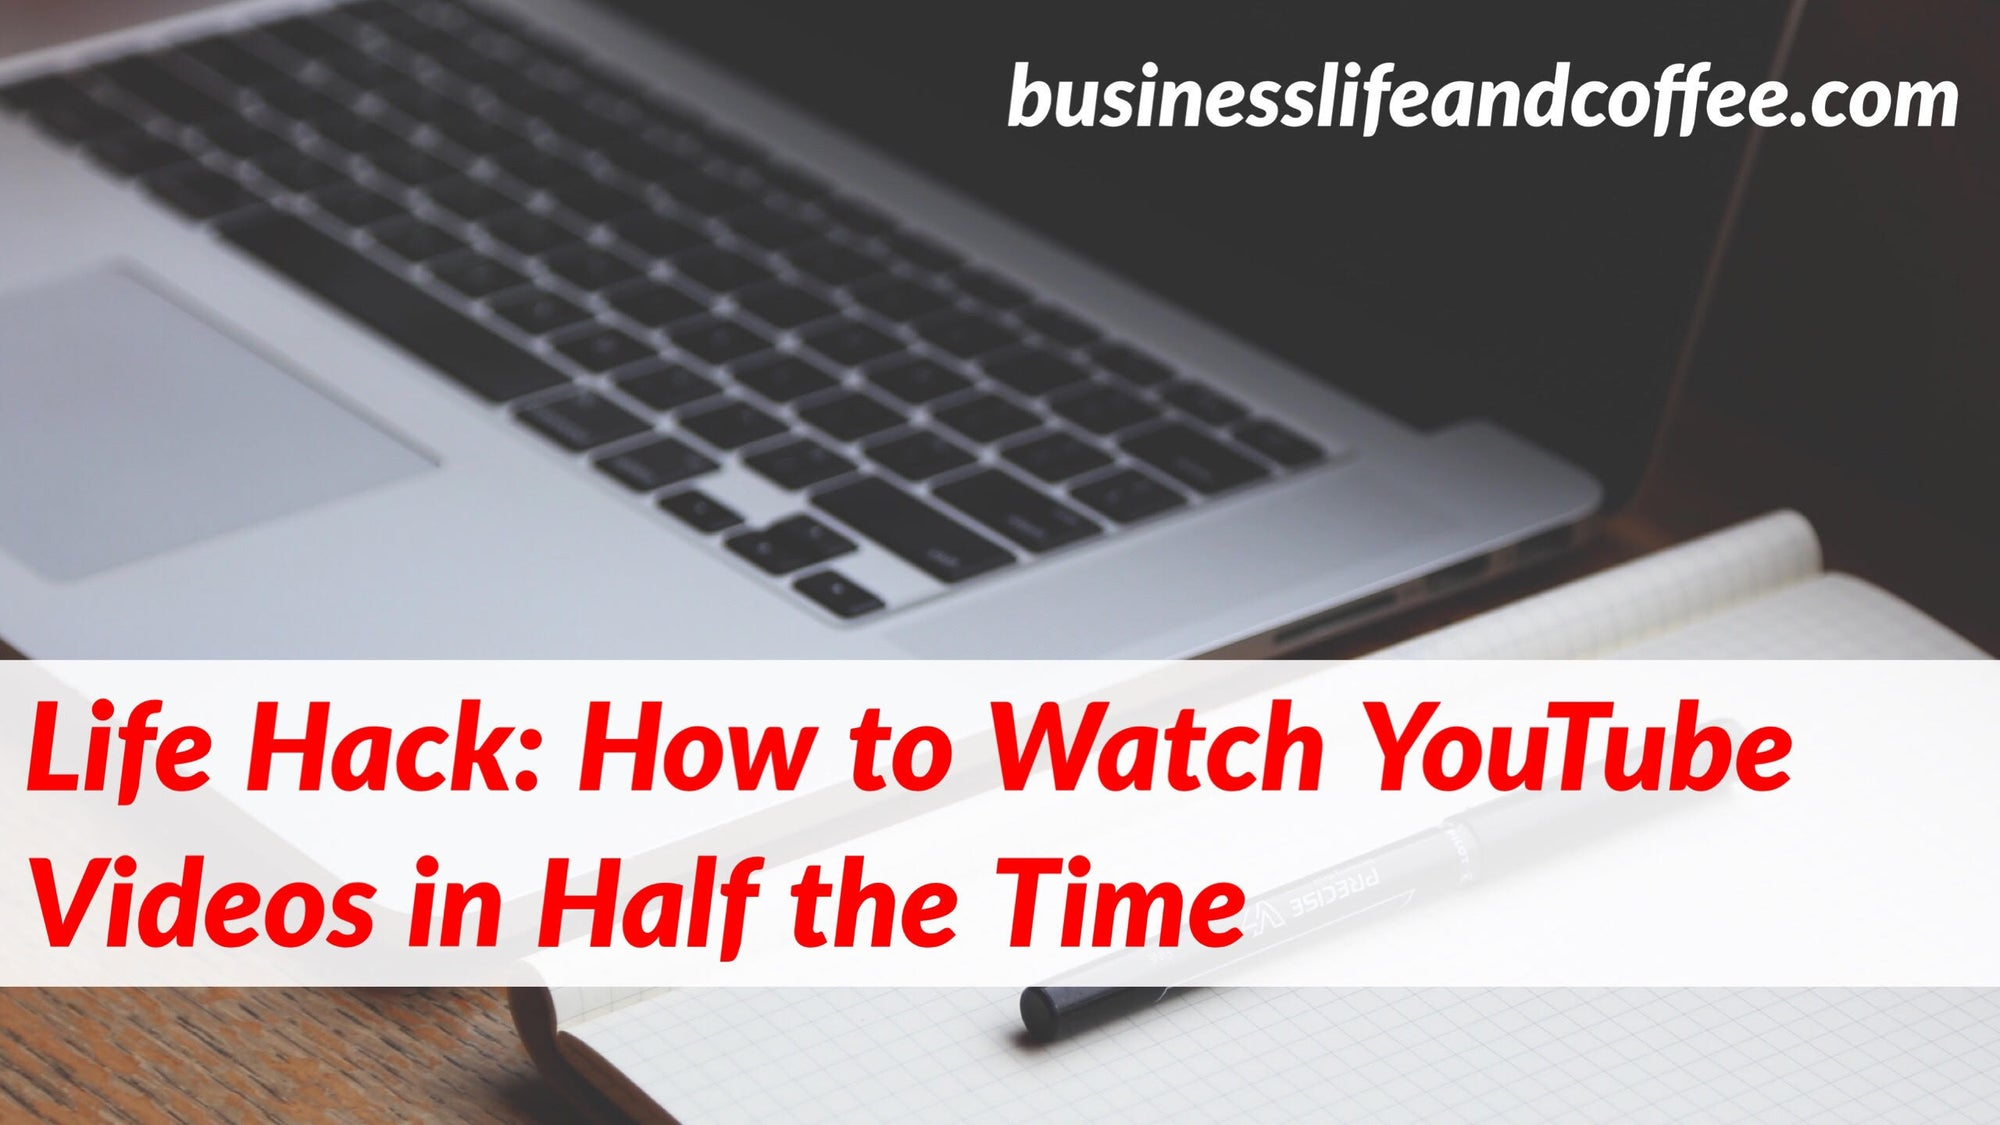 Who Else Wants To Maximize Productivity While Watching YouTube Videos?